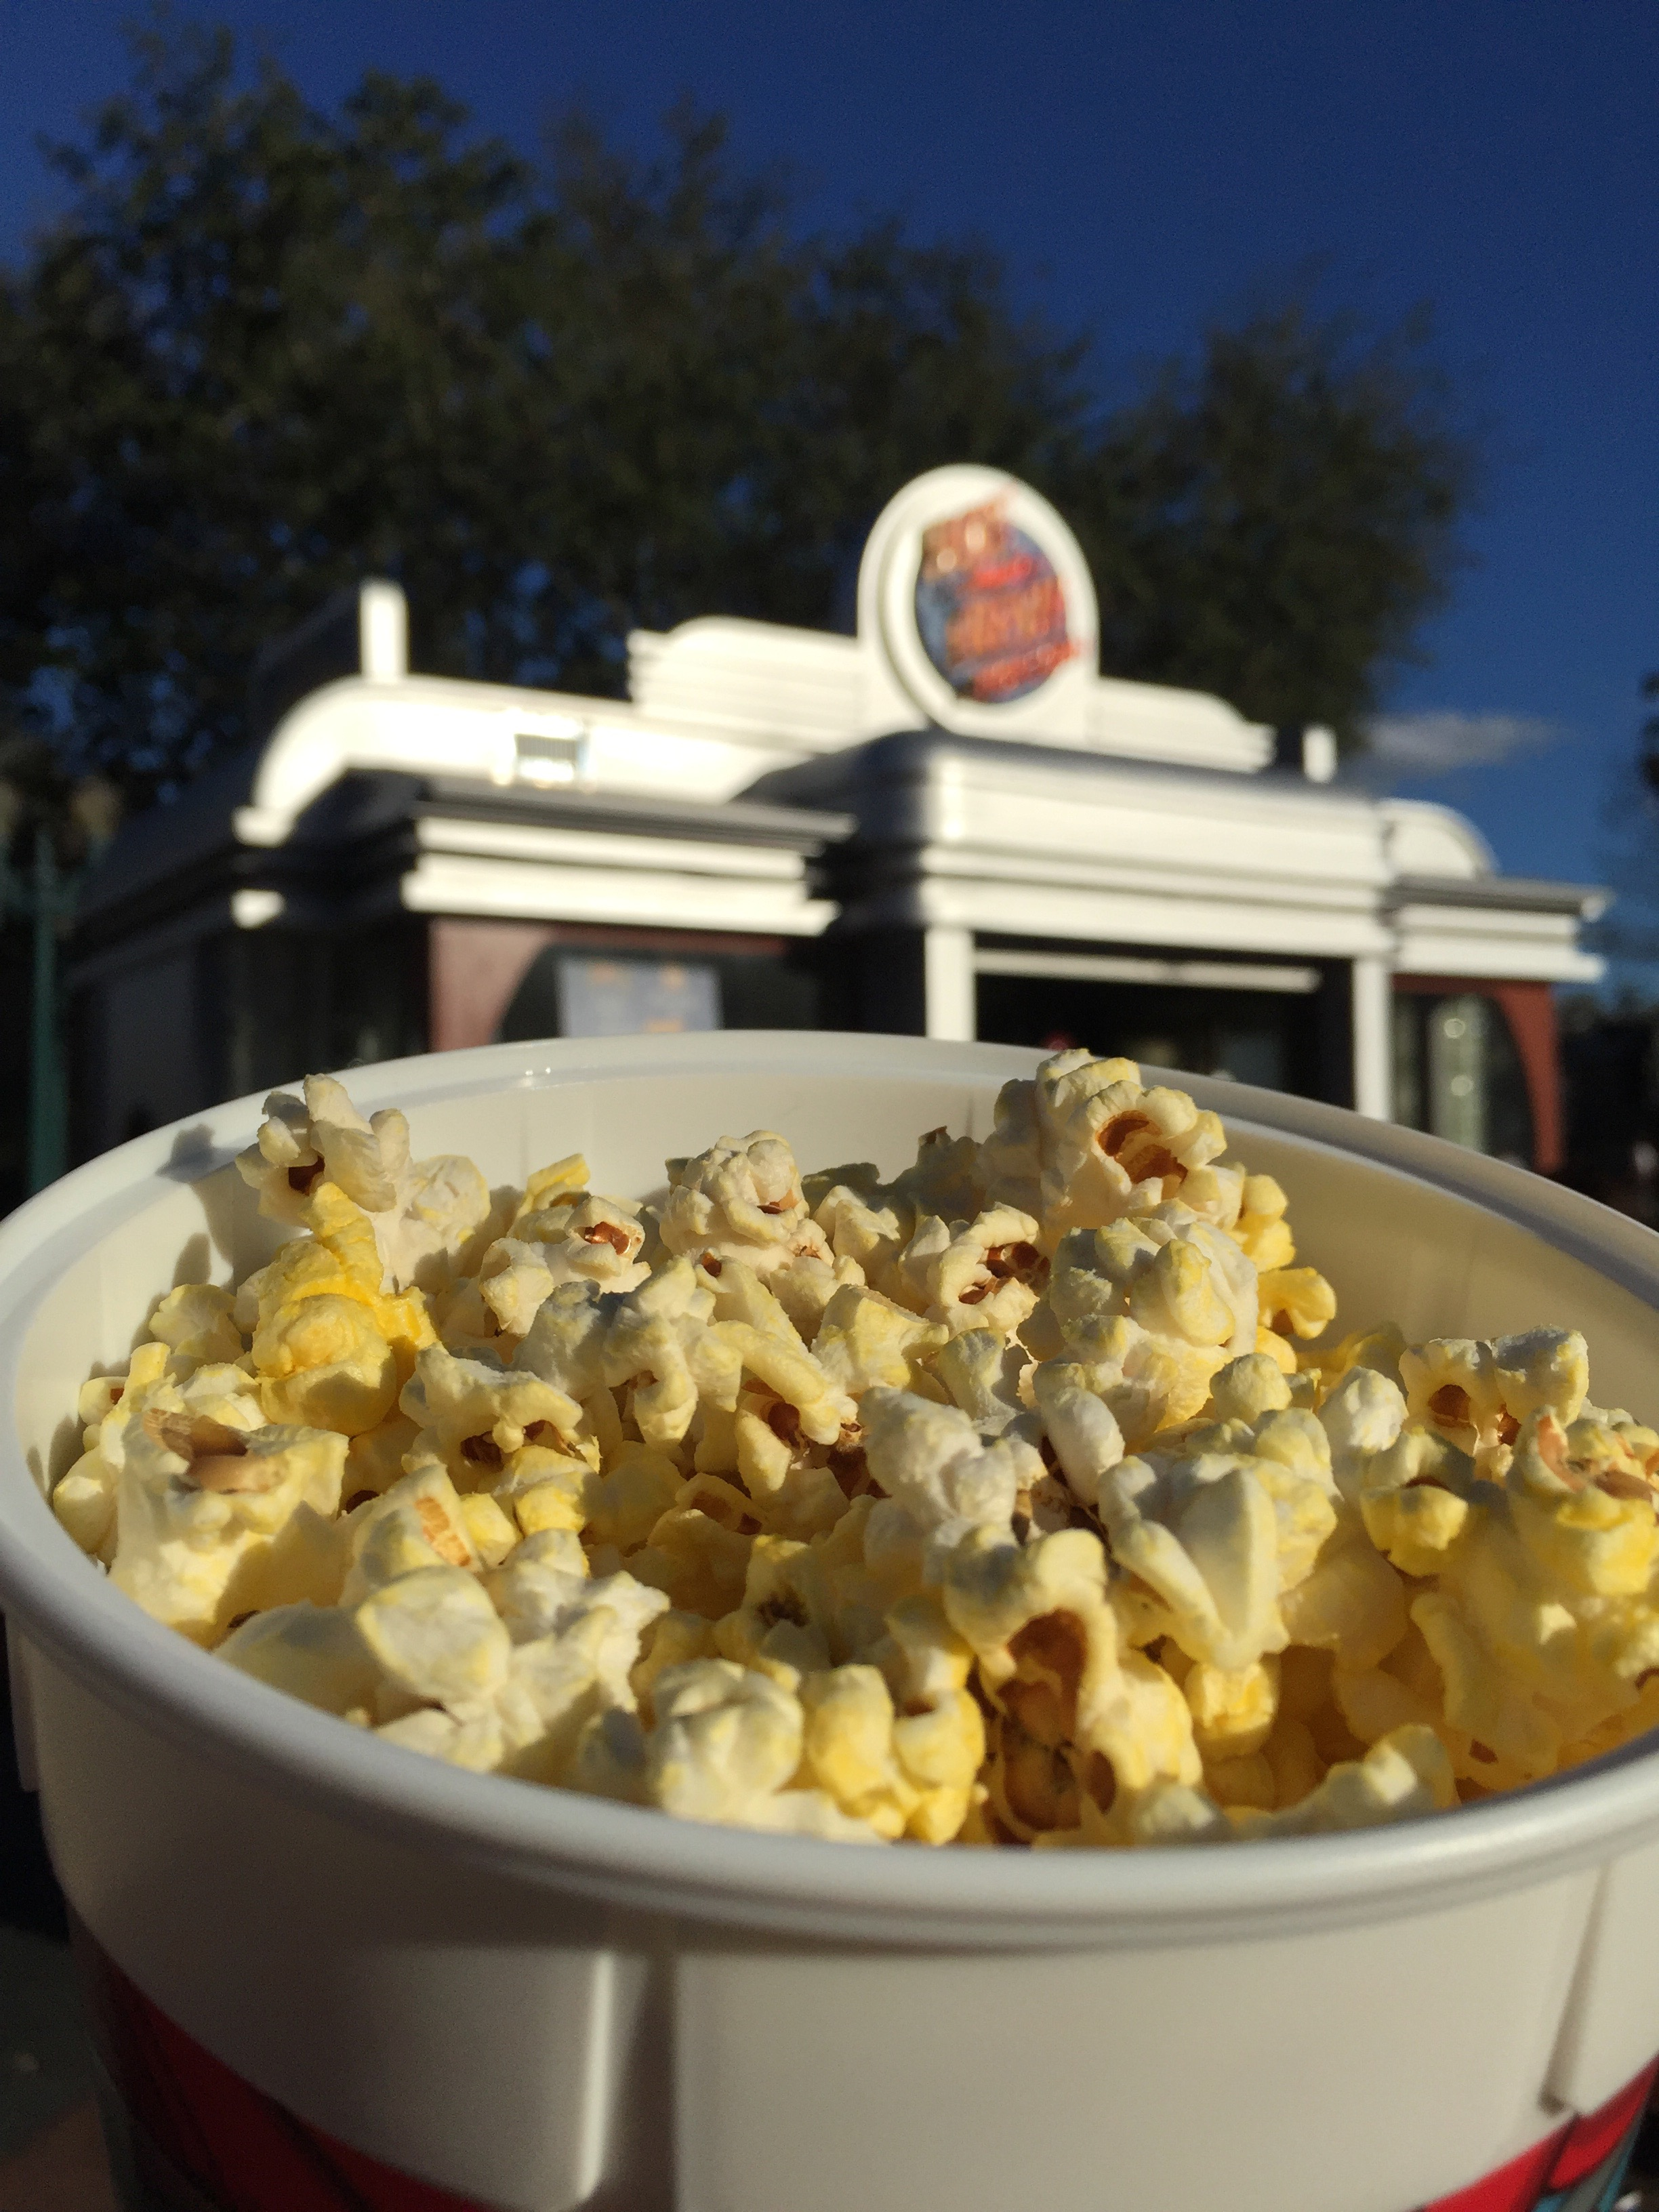 The popcorn bucket is one of the best investments we have made.